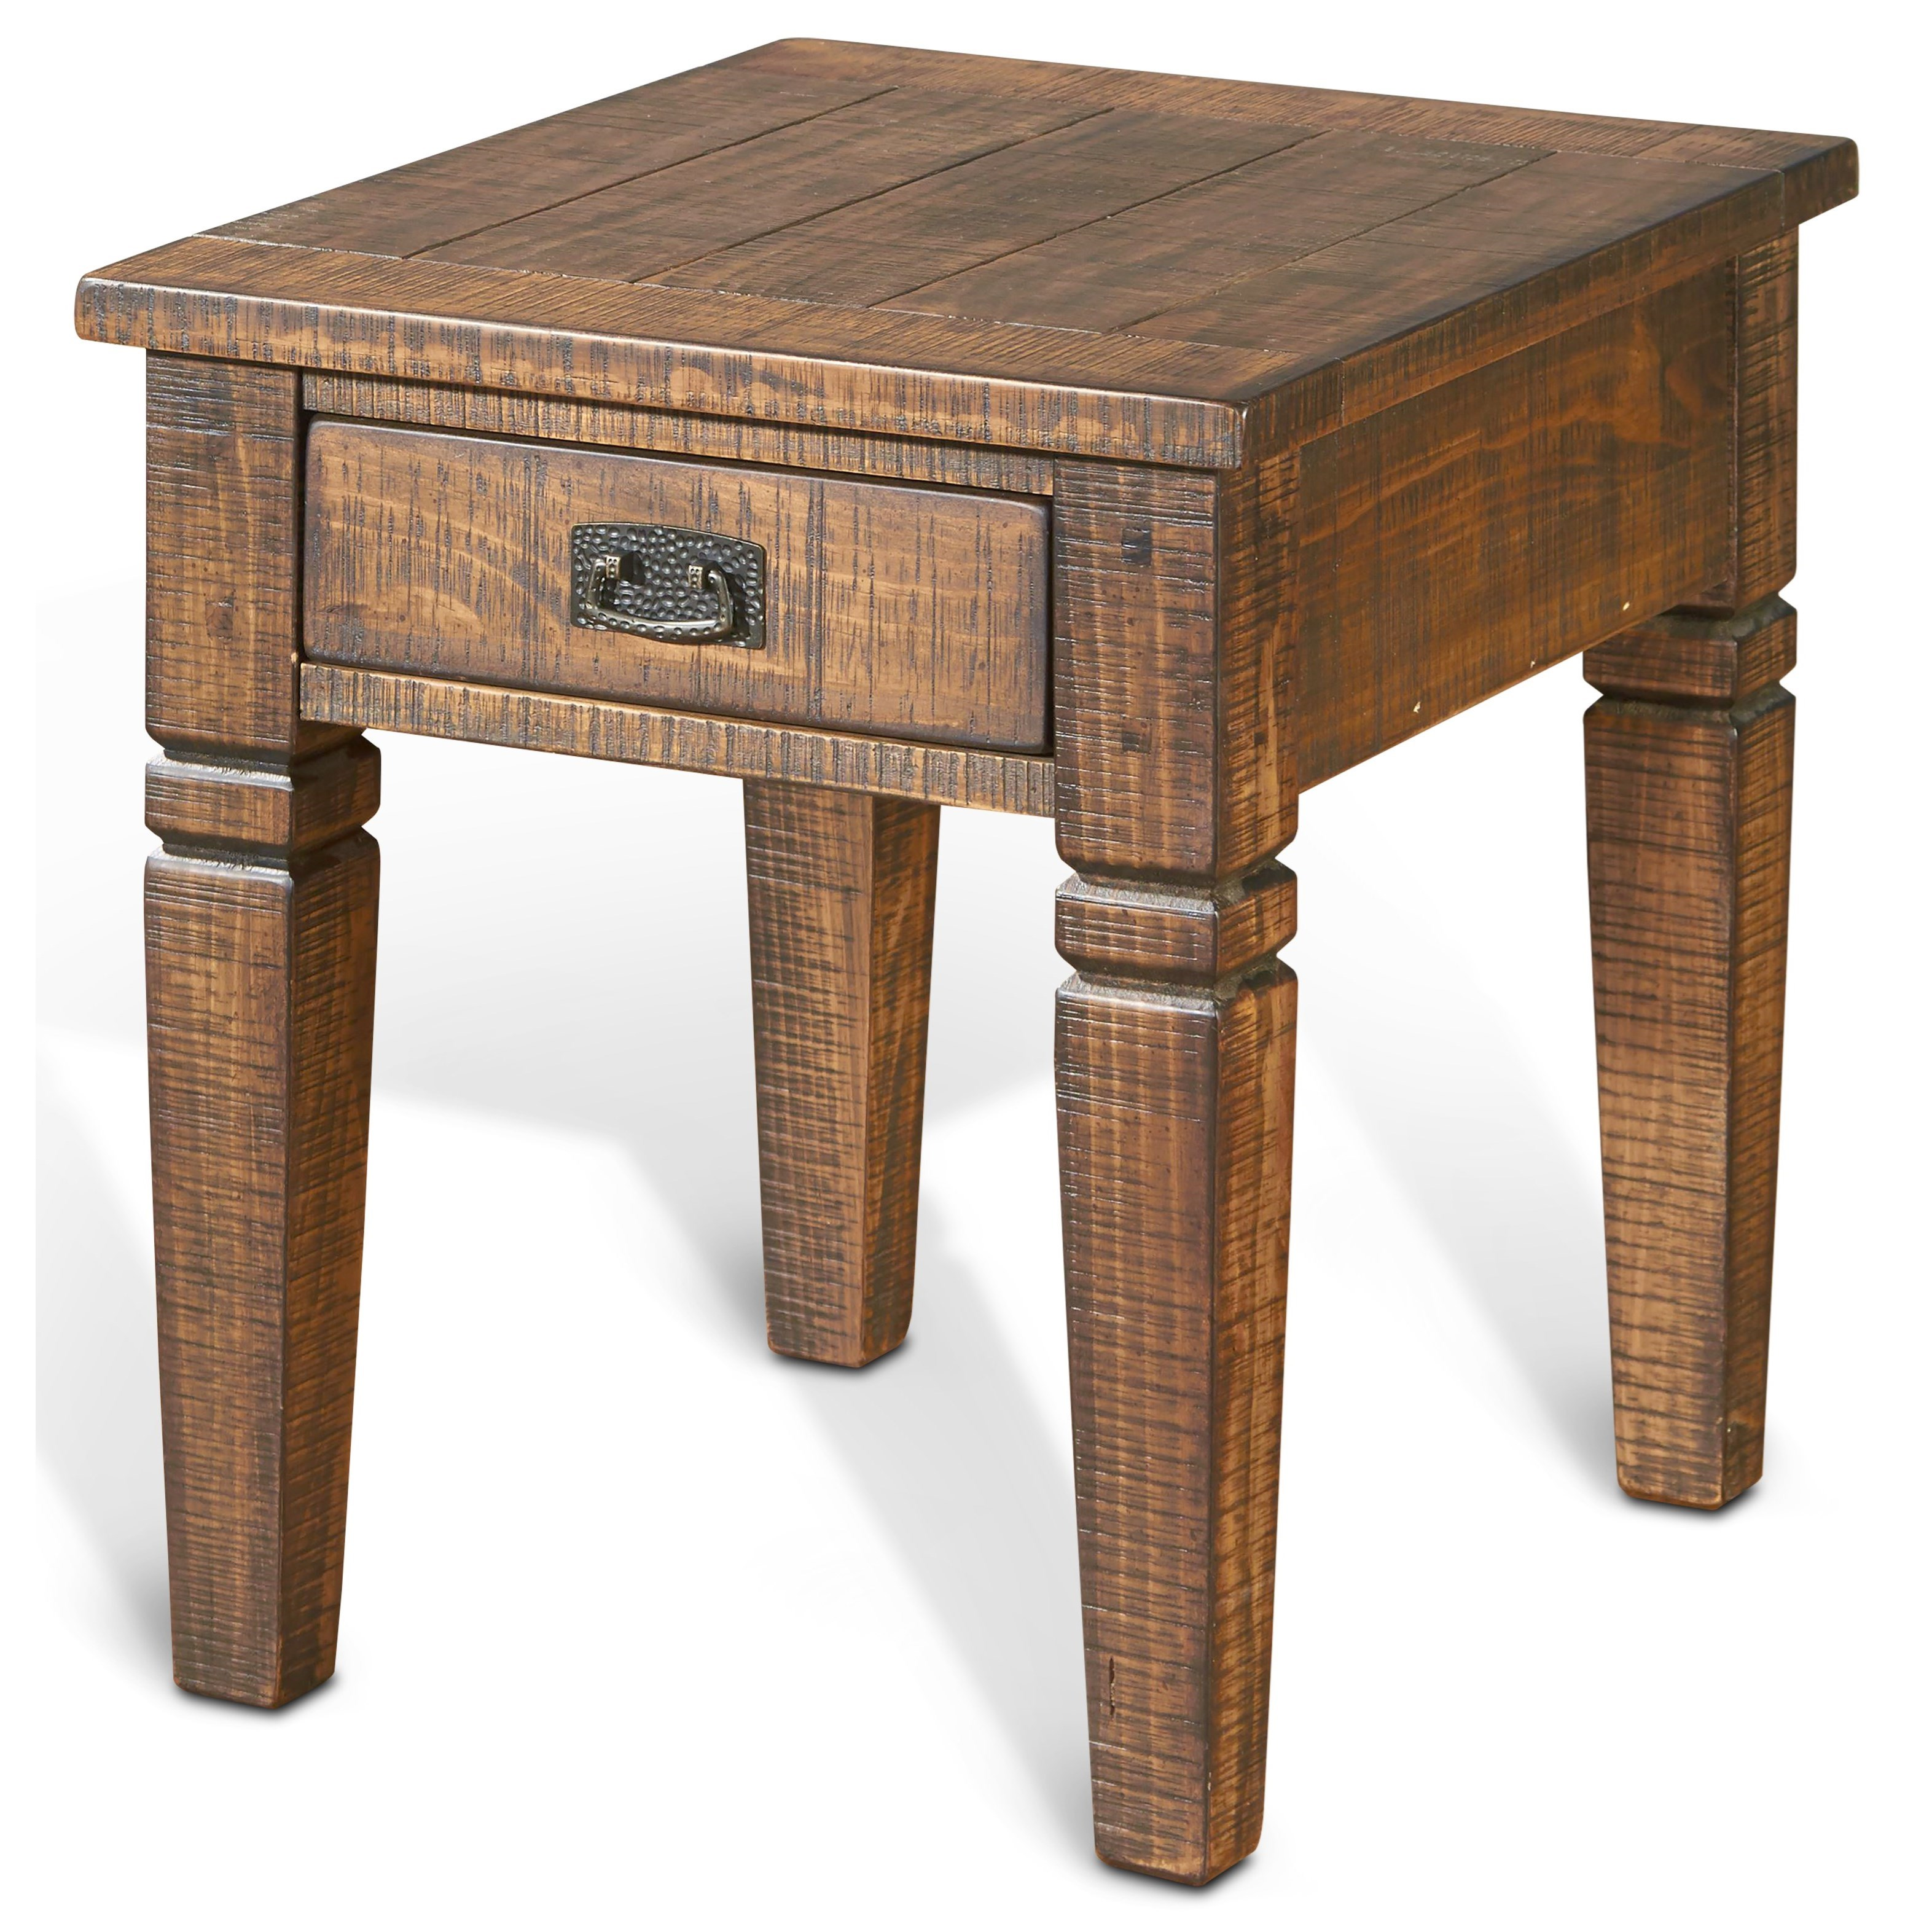 Sunny Designs Homestead End Table w/ 1 Drawer - Item Number: 3252TL-E